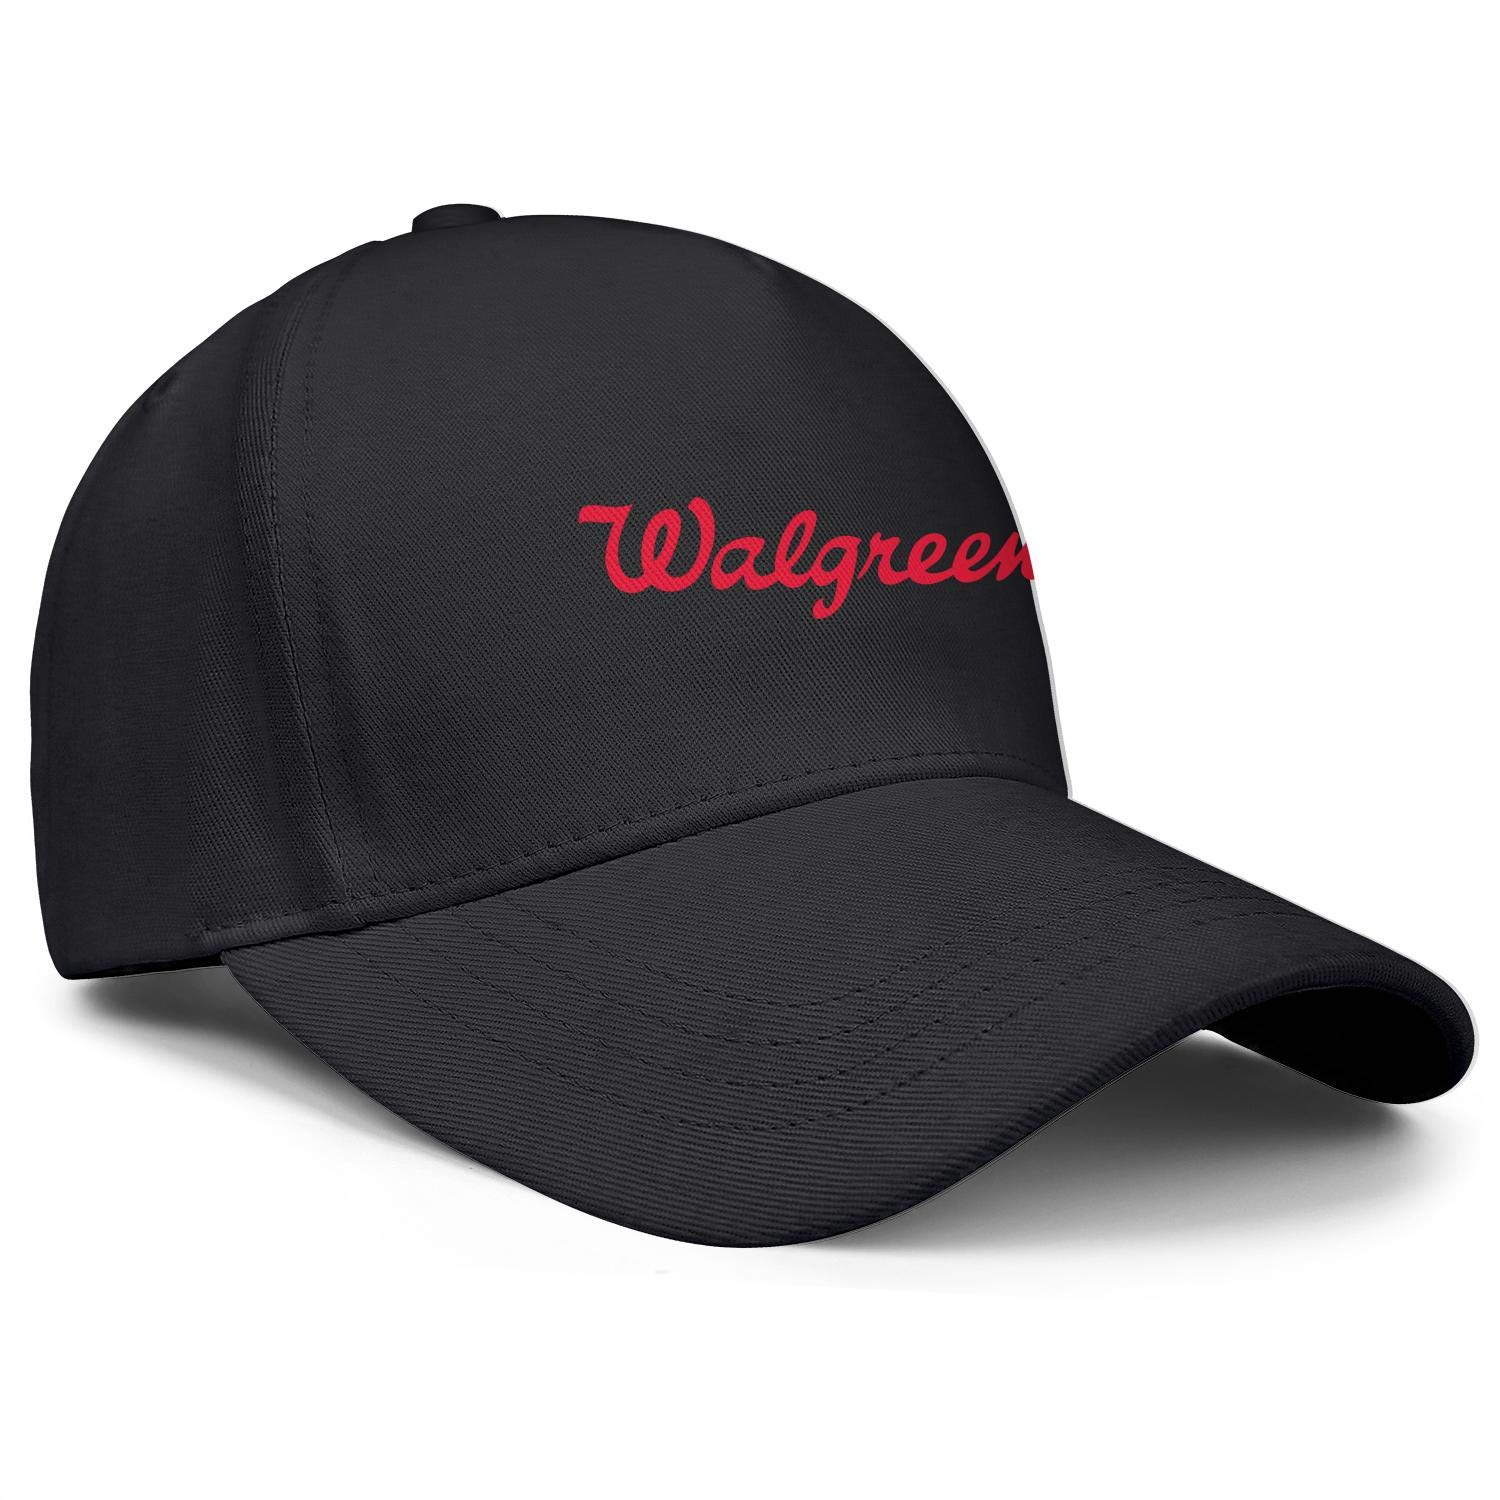 Cap Adjustable Hat Workout Caps CAEEKER Man Womans Walgreens-at-The-Corner-of-Happy-and-Healthy